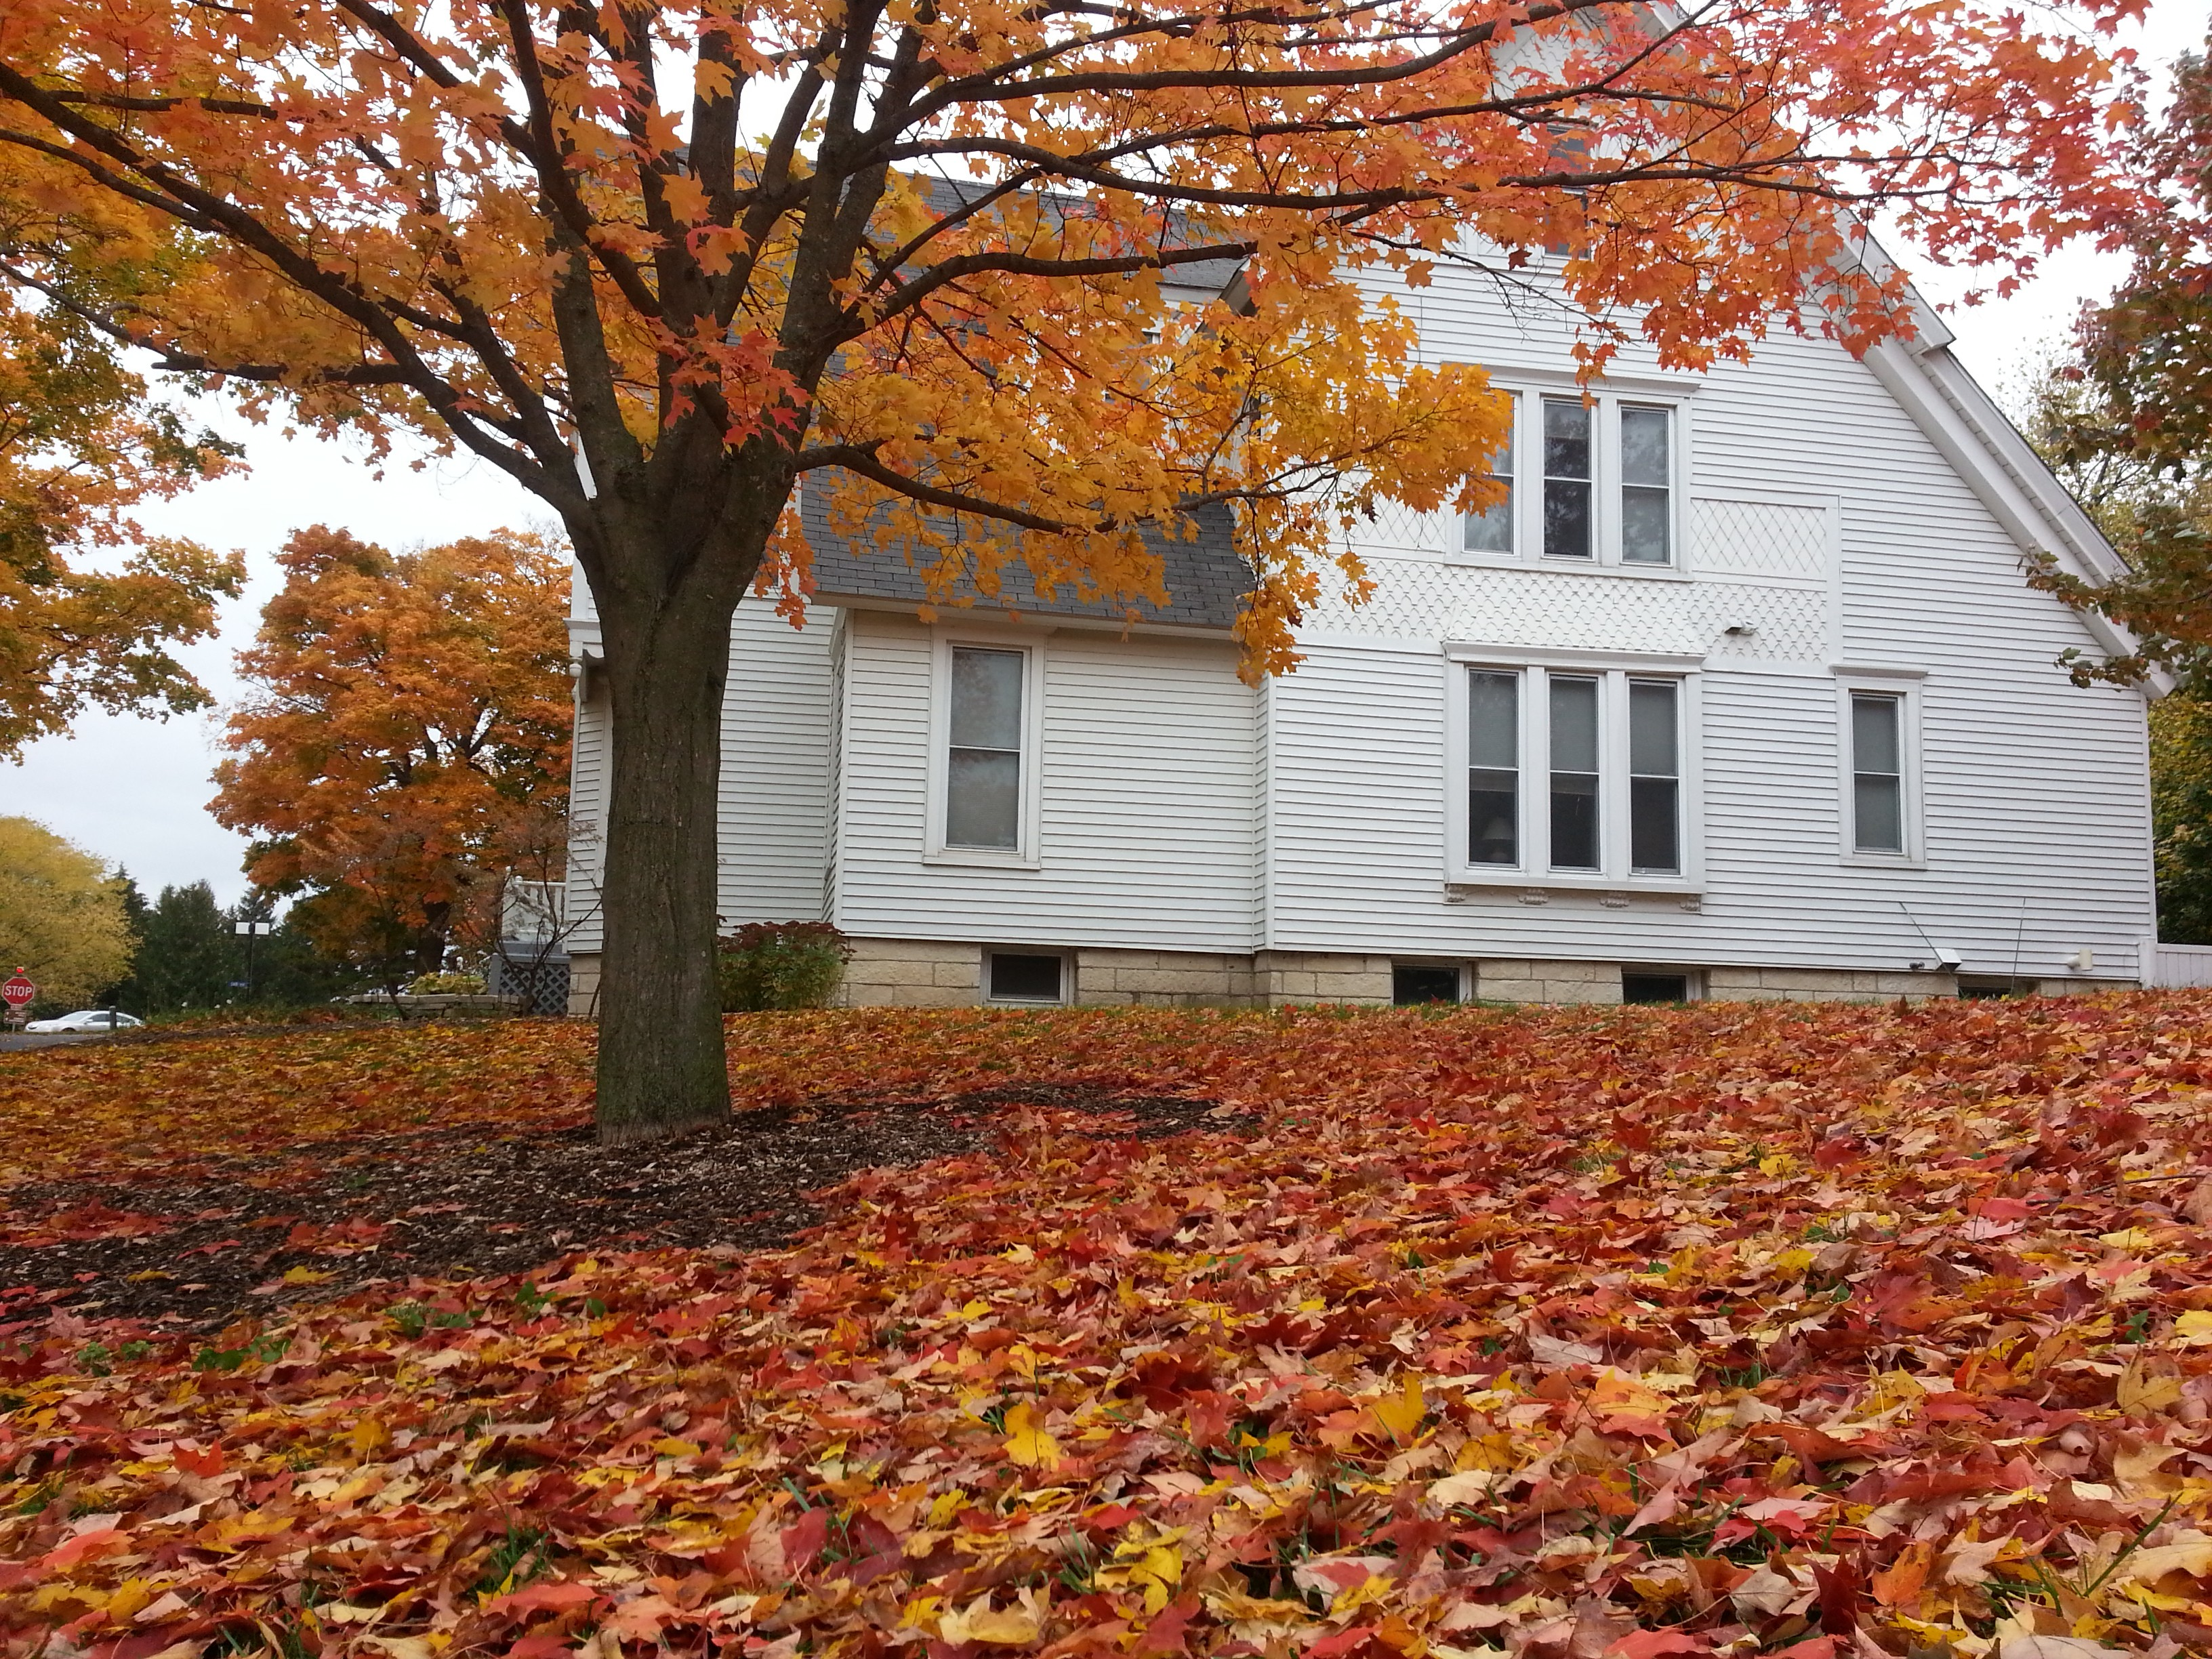 Throwback to October: A Fermilab village home is surrounded by fallen leaves. Photo: Tapasi Ghosh, Federal University of Goias